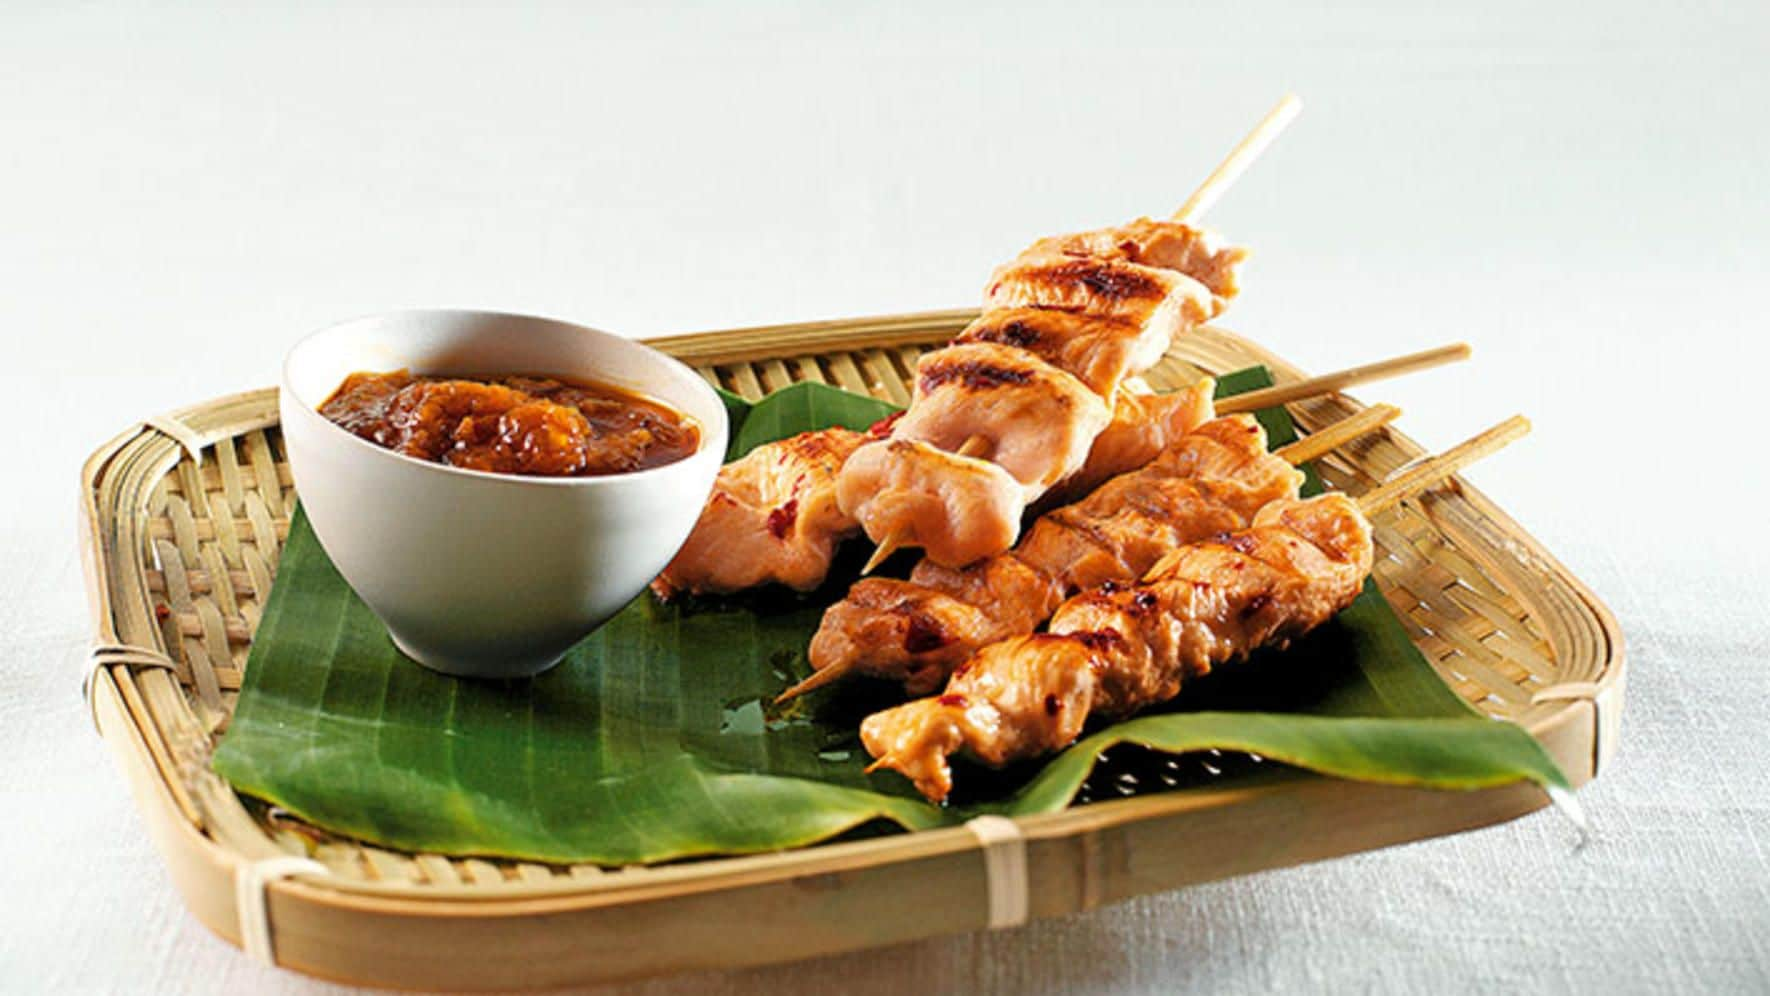 Betty Bossi, Poulet-Satay-Spiesse